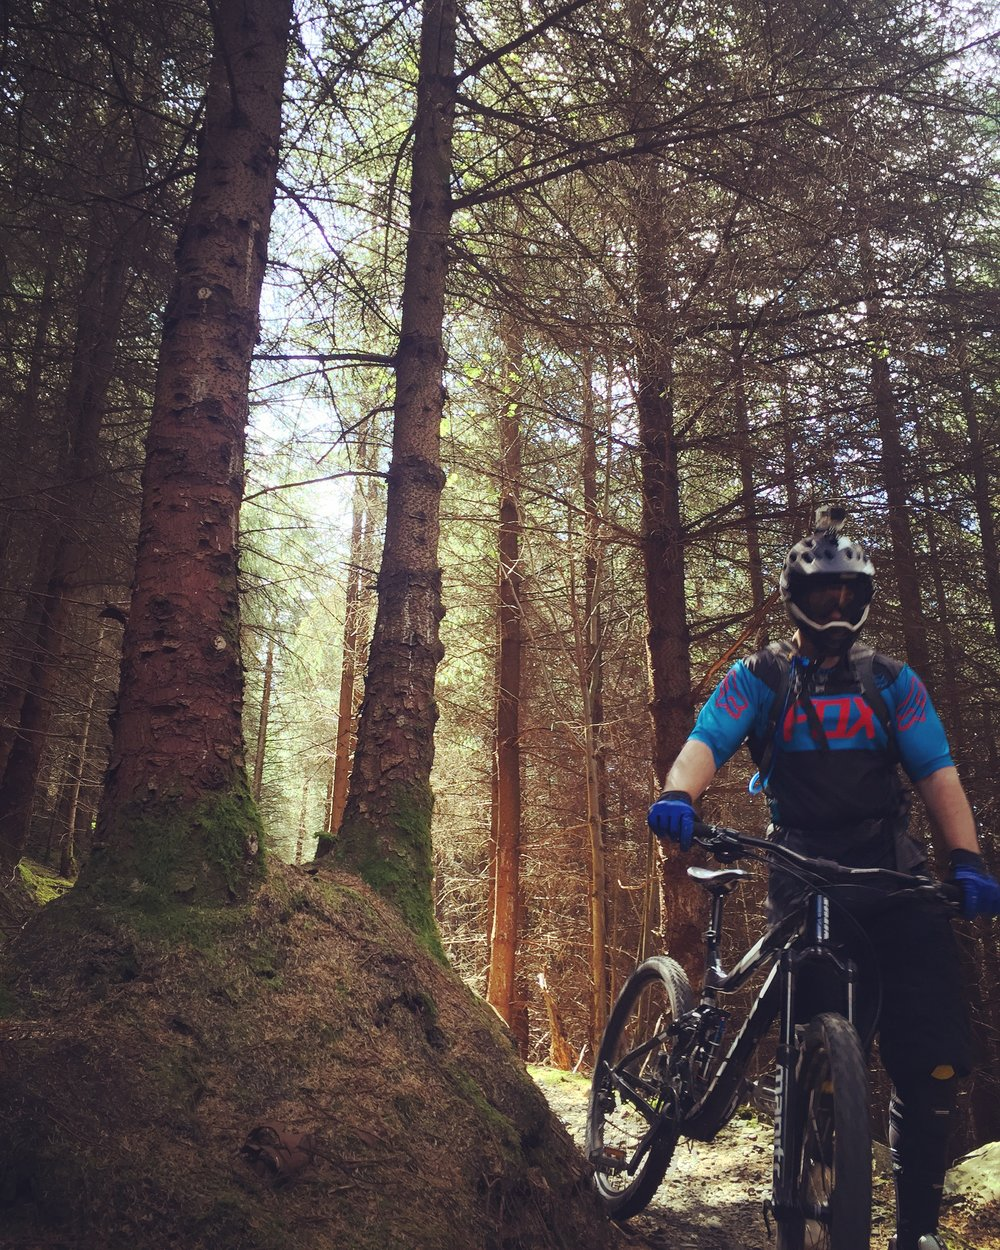 silhouettes_trees_kilbroney_forest_trails_rostrevor_mtb_mountainbiking_ni_explorer_niexplorer_northern_ireland_blog.jpg